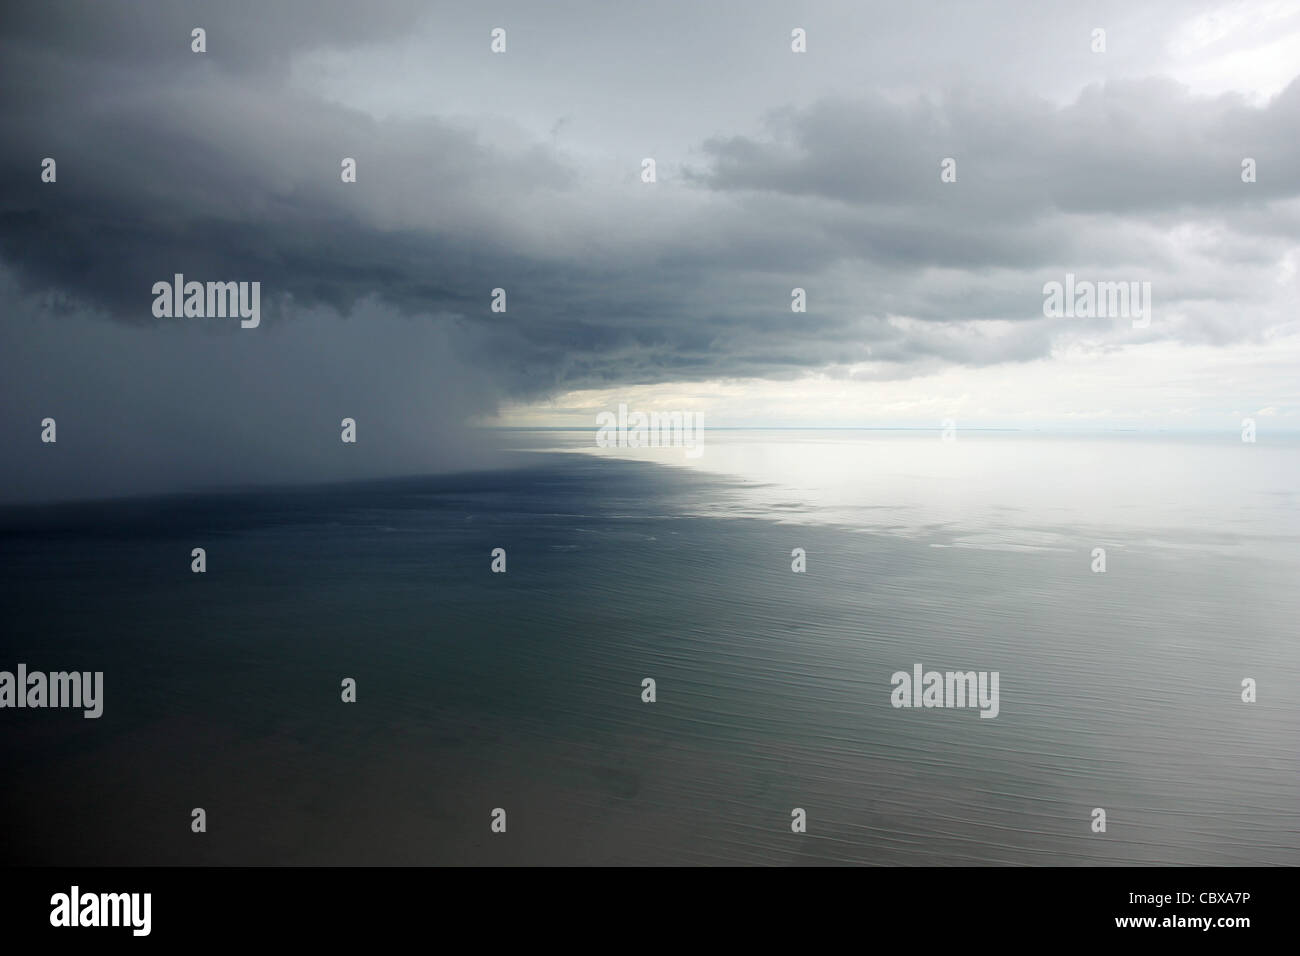 Tropical downpour off the coast of Sierra Leone, West Africa - Stock Image